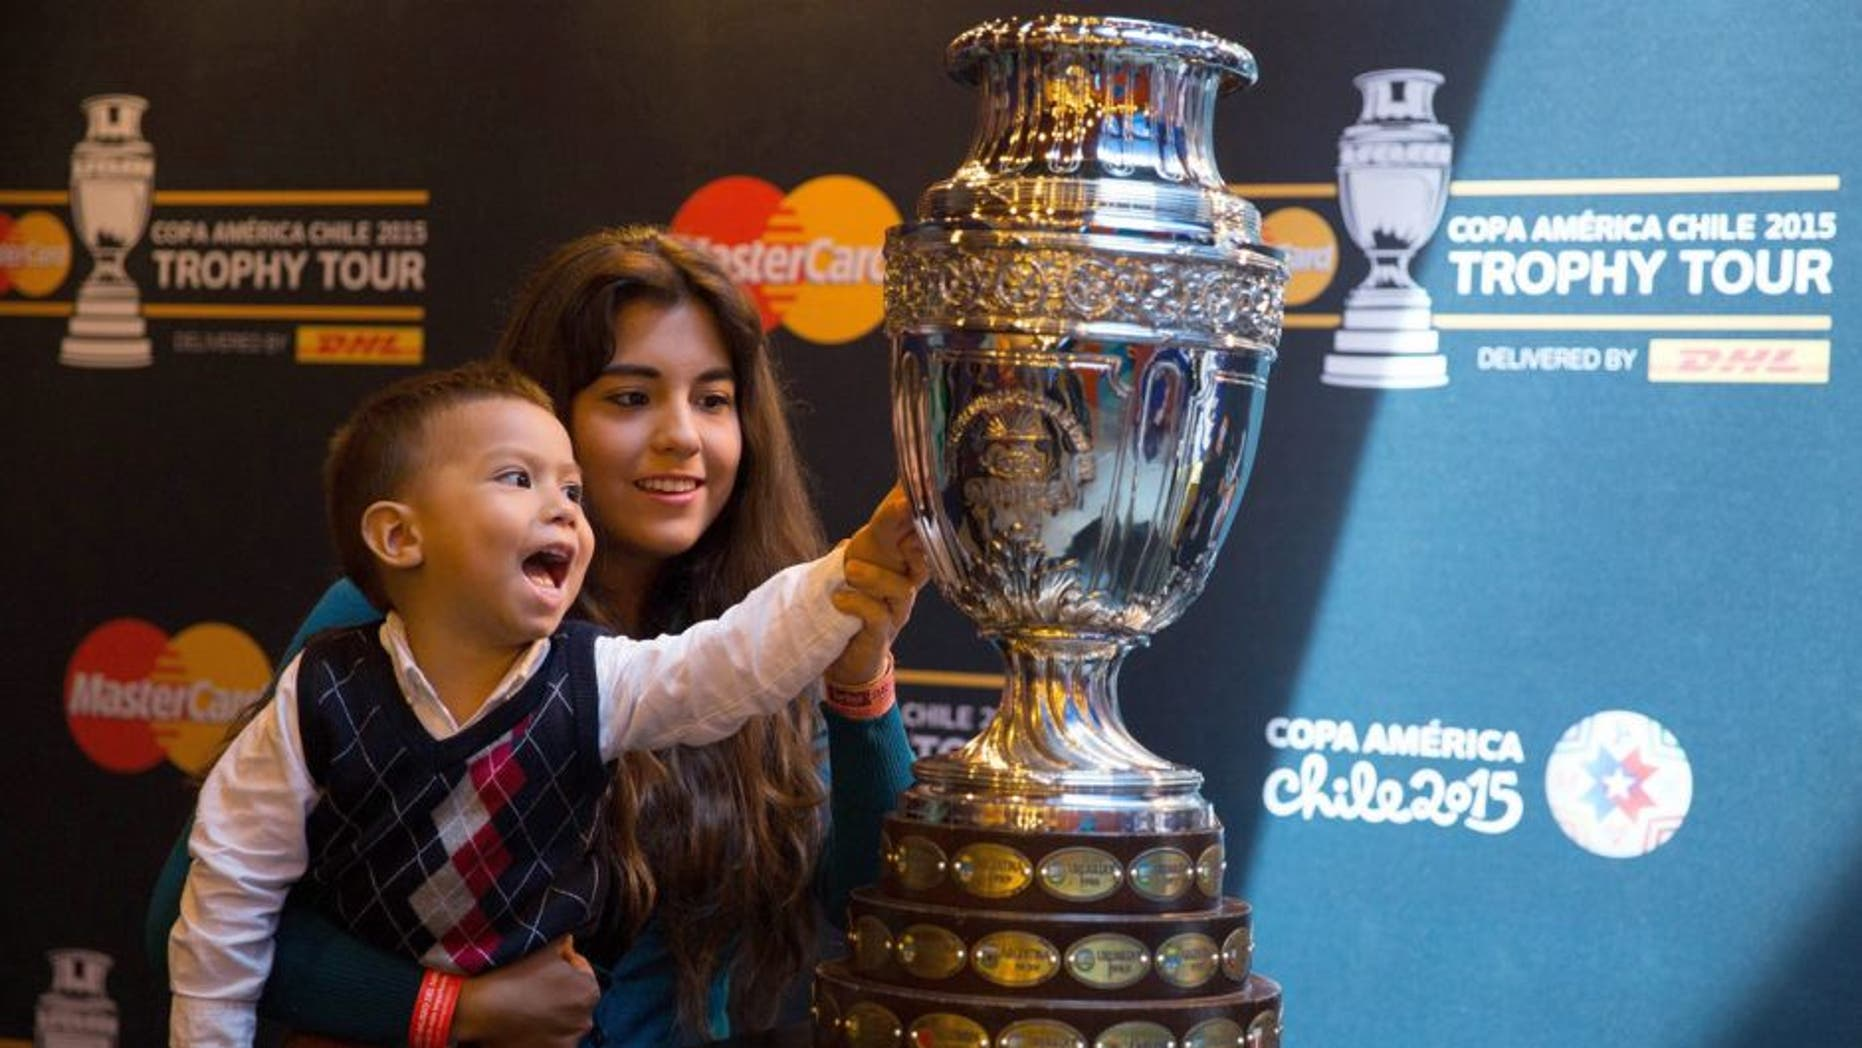 MEXICO CITY, MEXICO - MAY 21: A child touches the Copa America's Trophy during the Copa America Trophy Tour at Papalote Museo del Niño in Mexico City, Mexico on May 21, 2015. Copa America Tournament will be held in Chile from 11 June to 4 July. (Photo by Daniel Cardenas/Anadolu Agency/Getty Images)